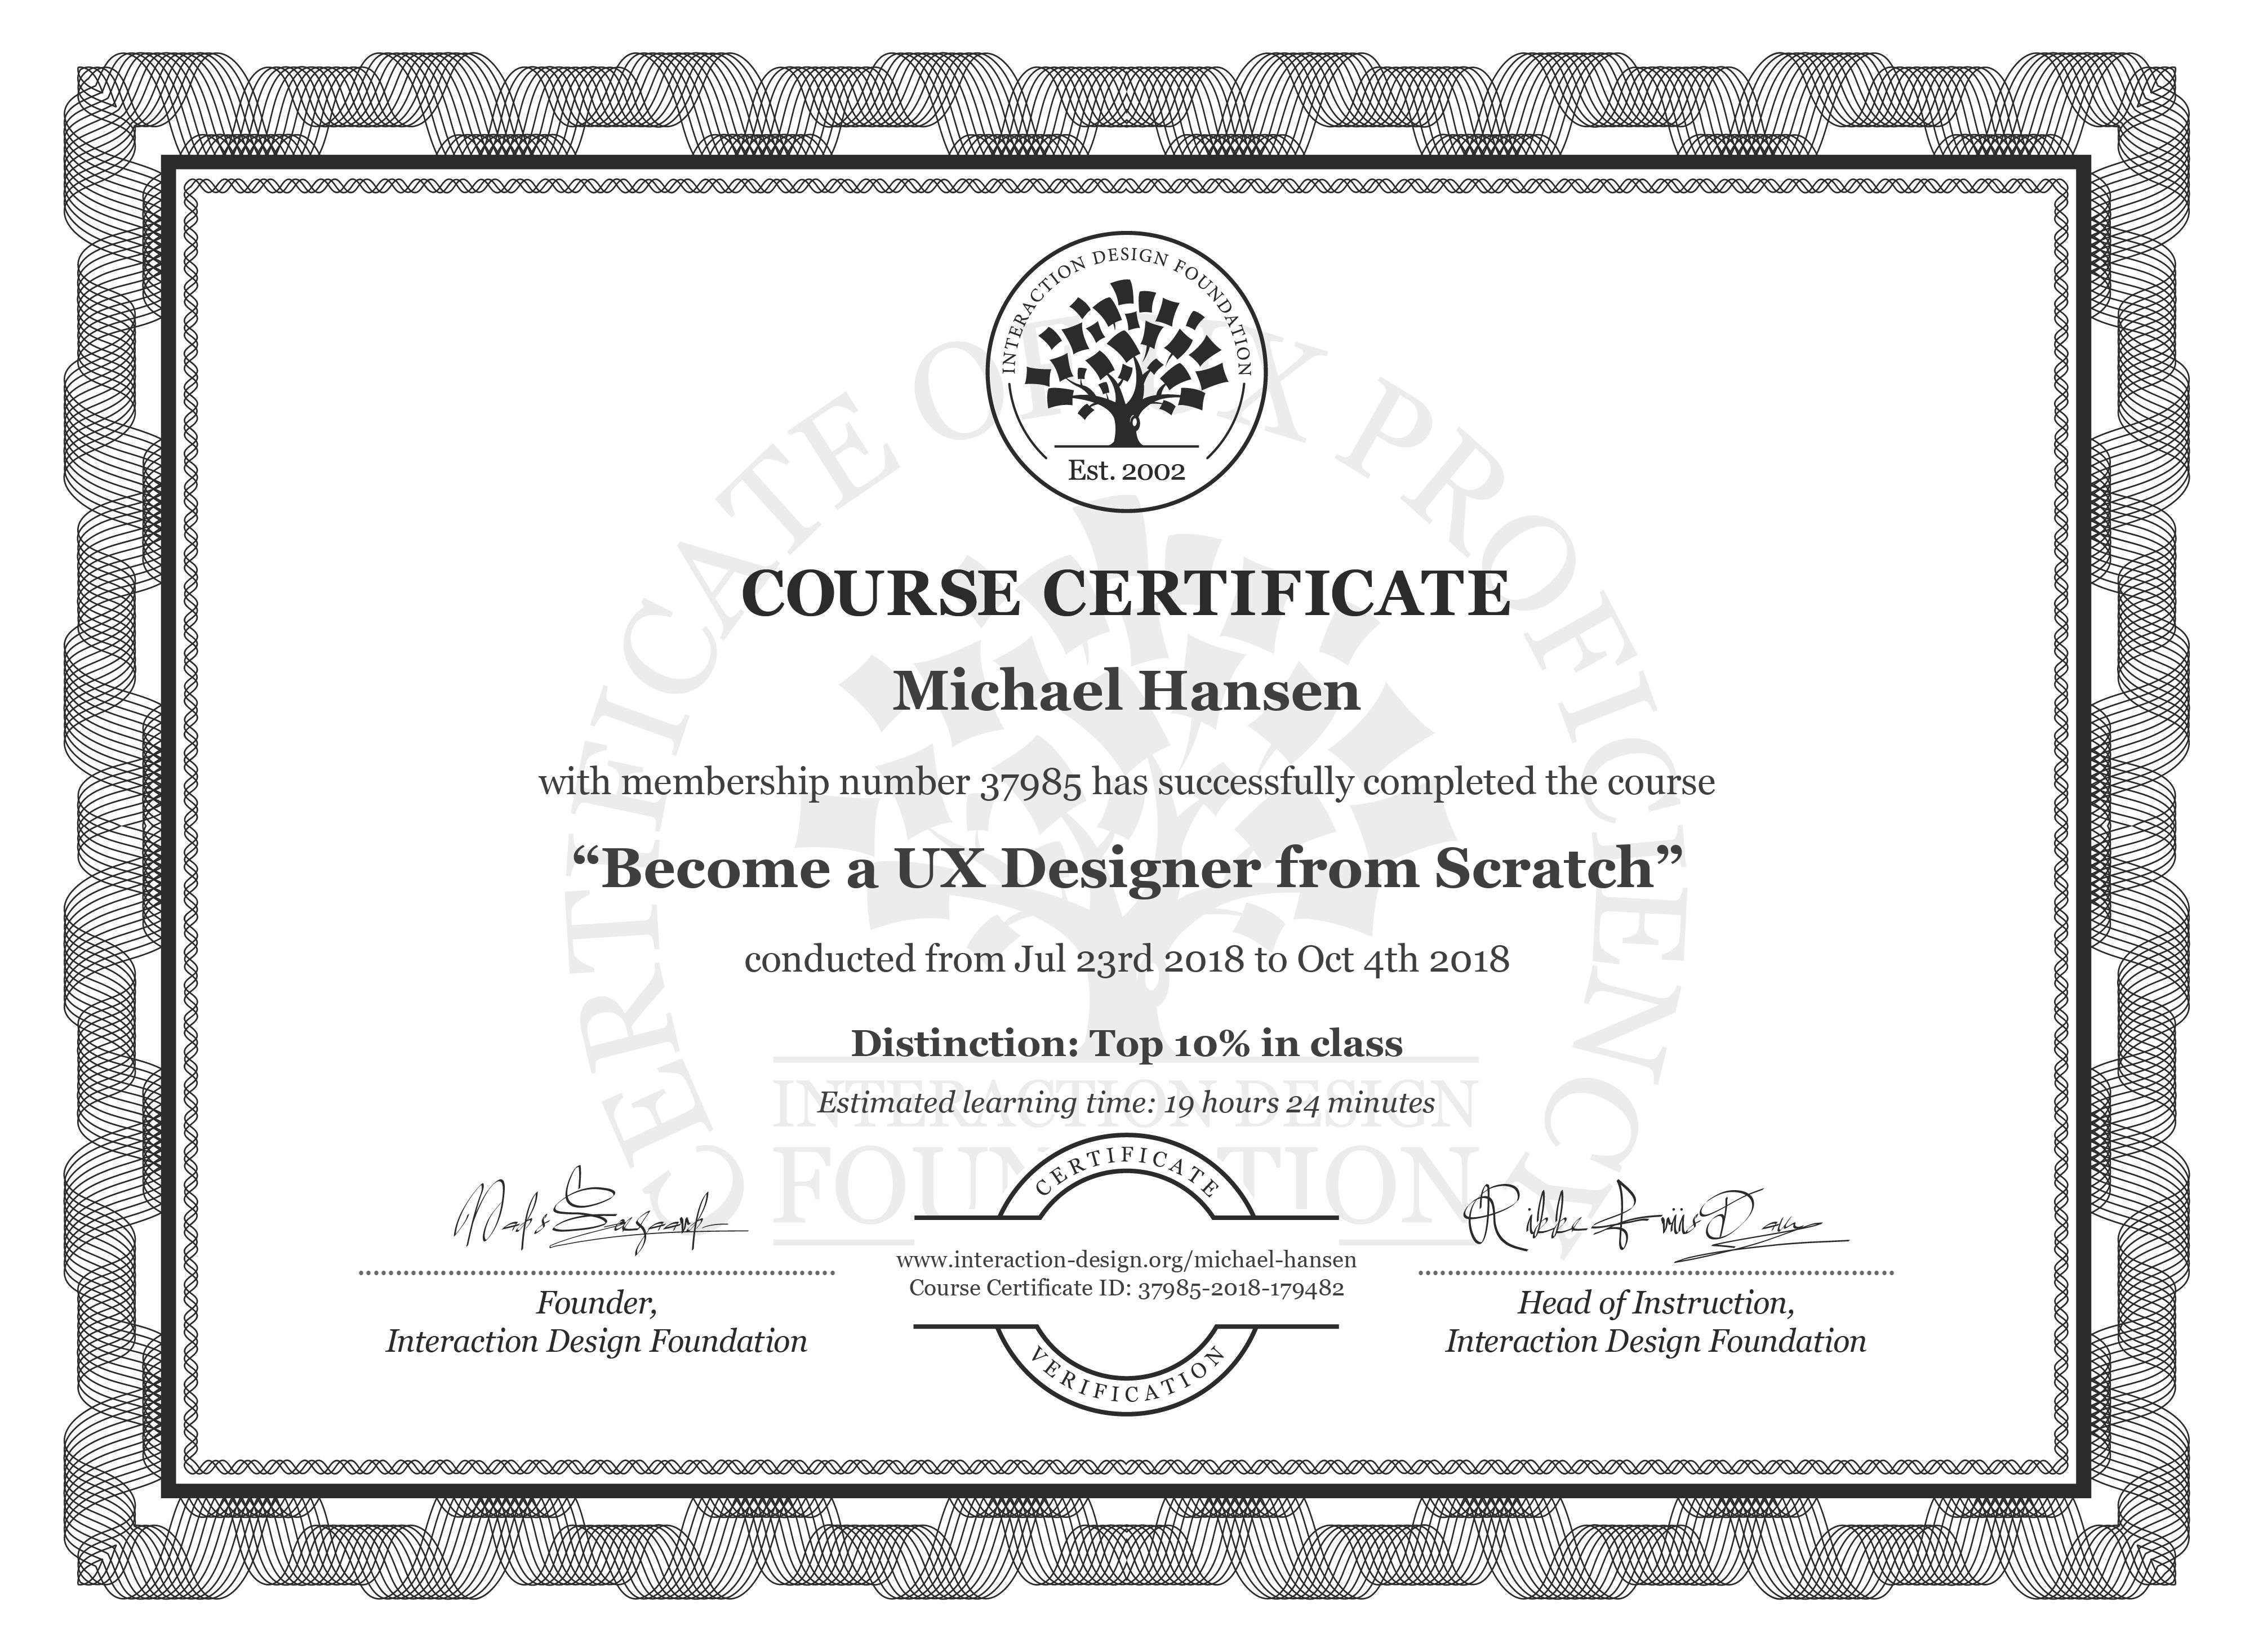 Michael Hansen's Course Certificate: User Experience: The Beginner's Guide